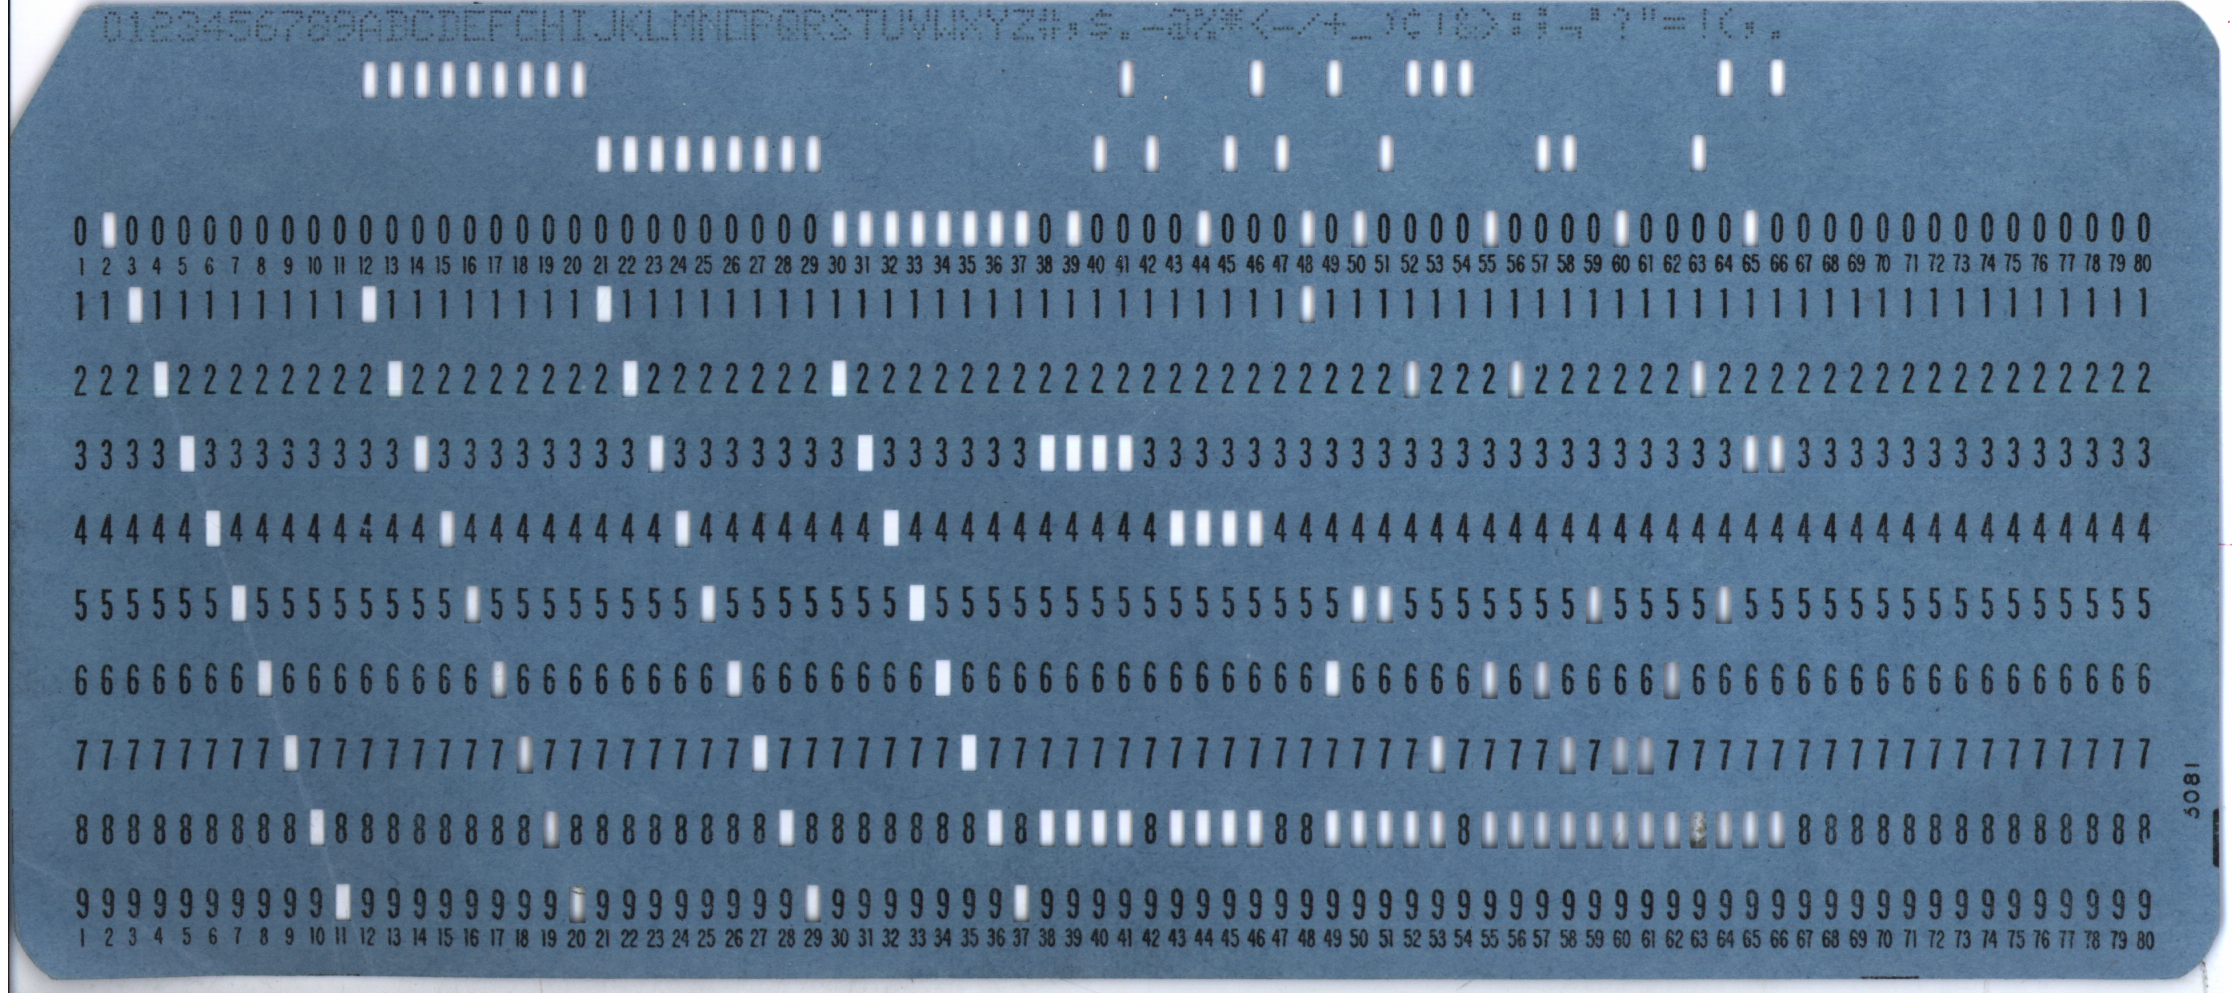 Blue Punch Card, Wikipedia